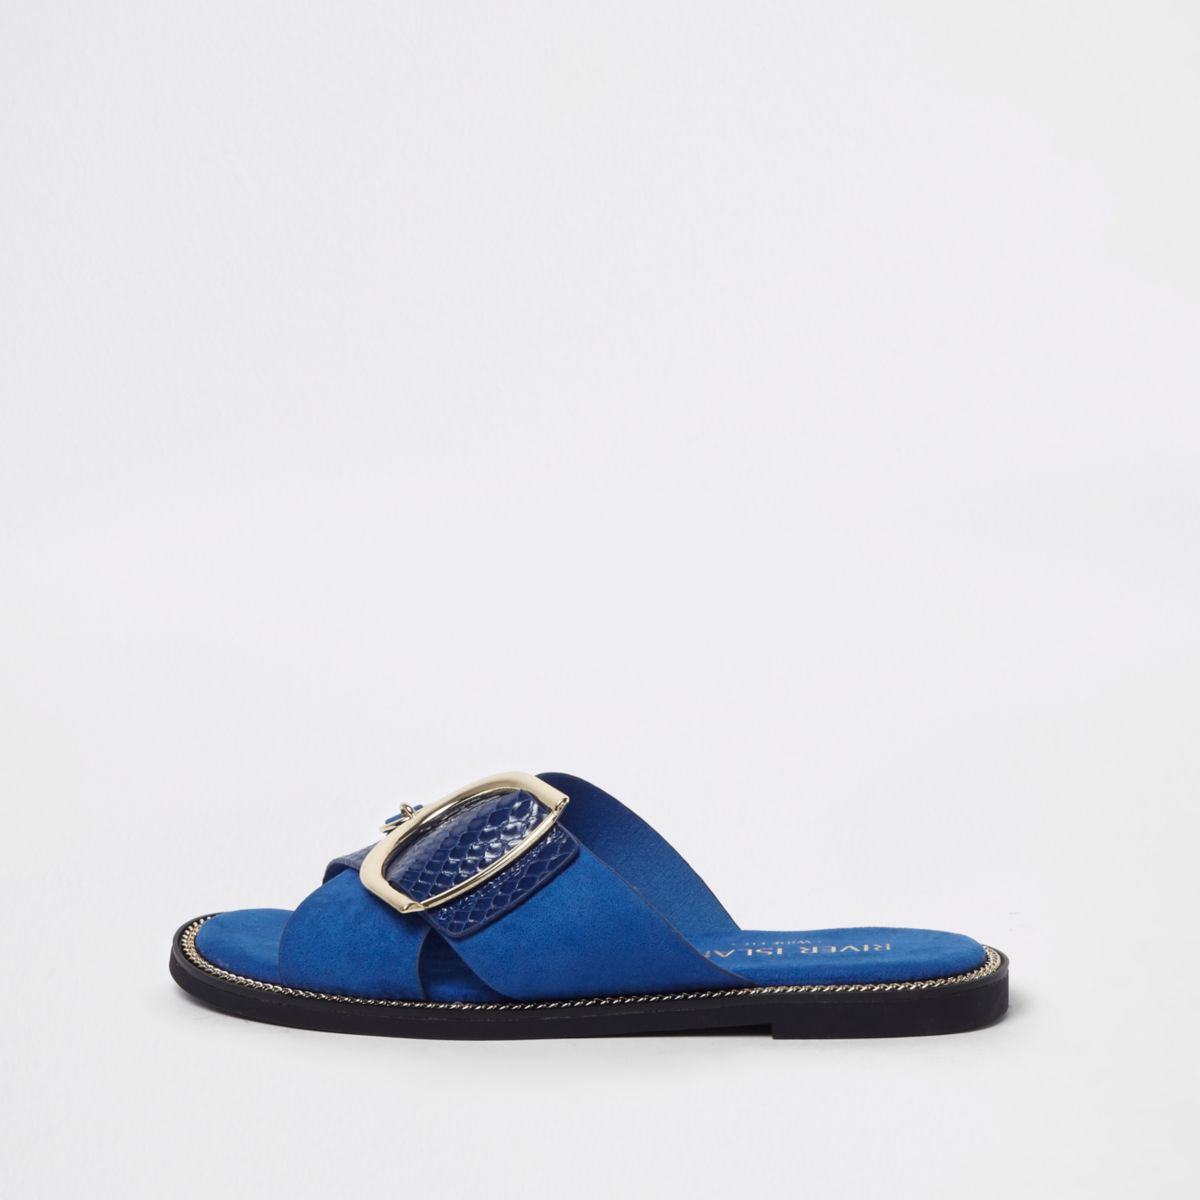 Blue croc gold tone buckle mules